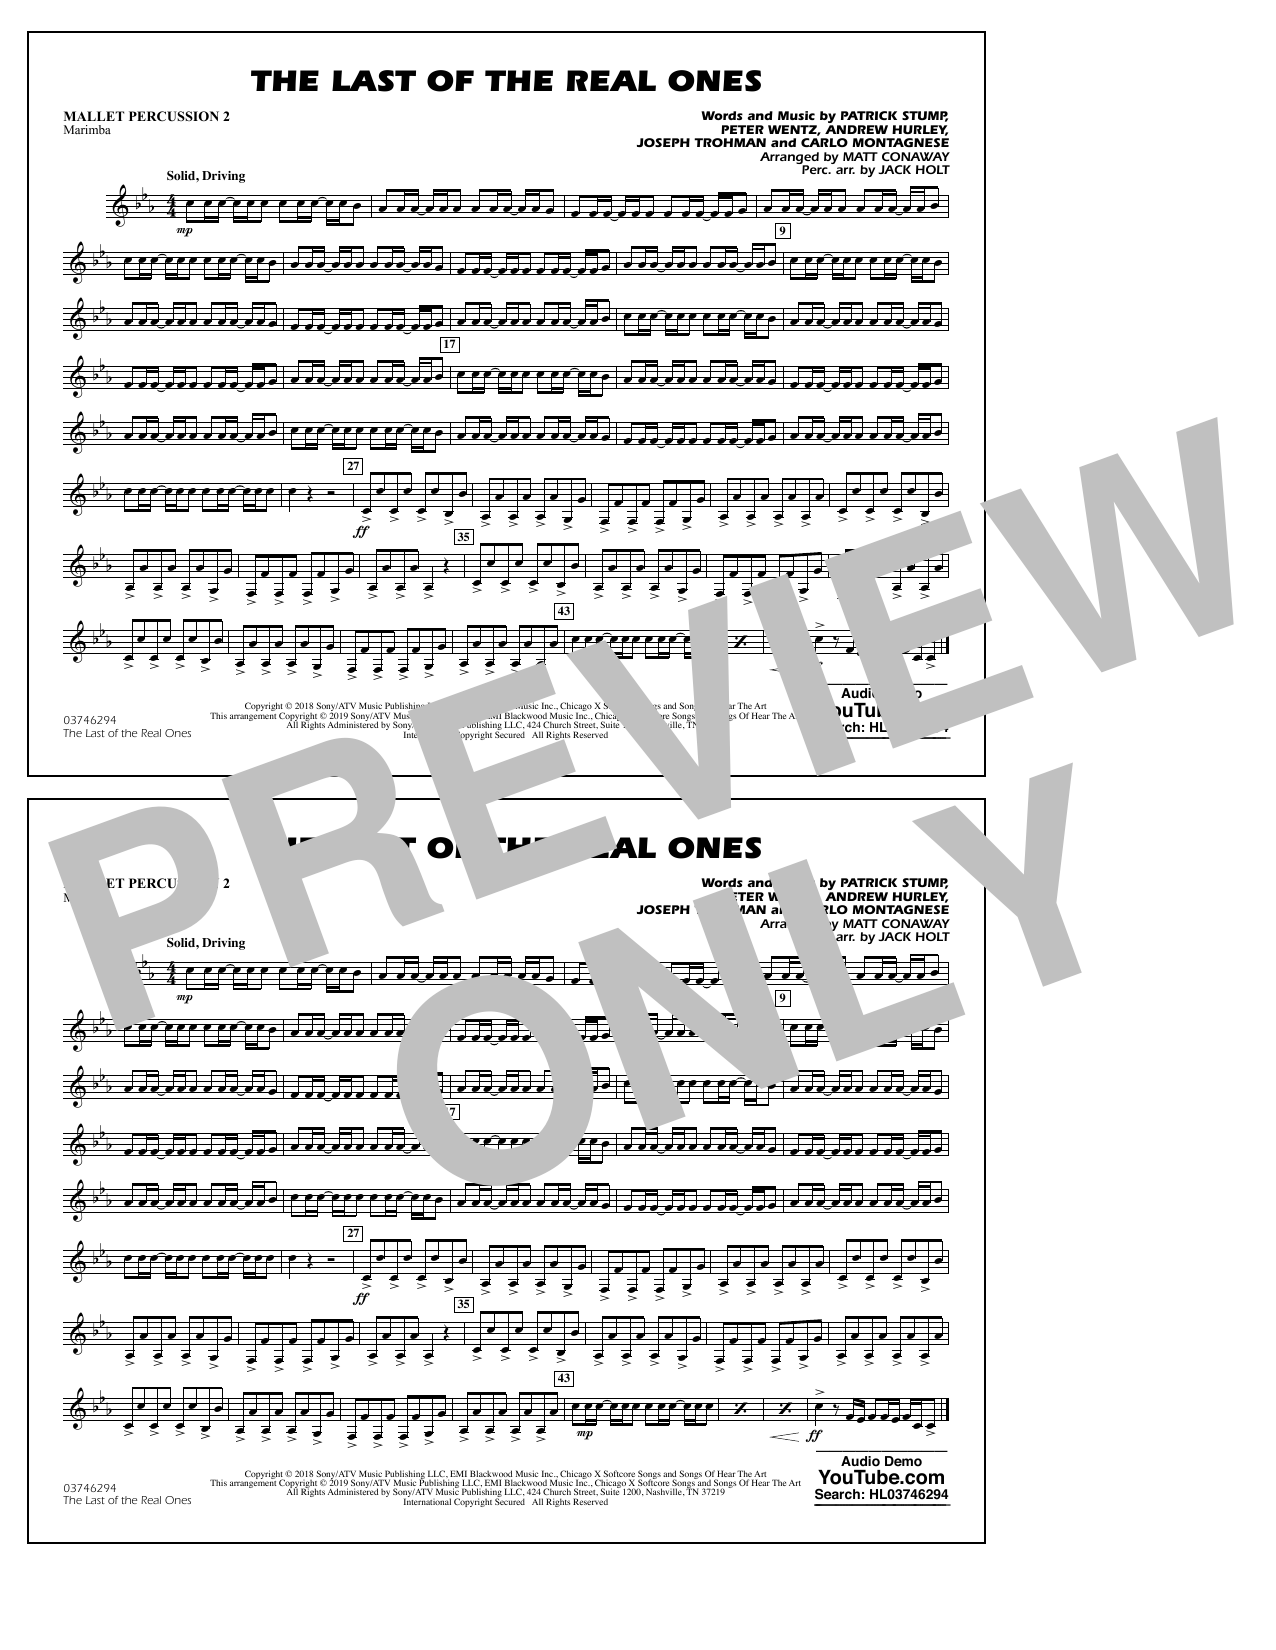 Last of the Real Ones (arr. Matt Conaway) - Mallet Percussion 2 (Marching Band)